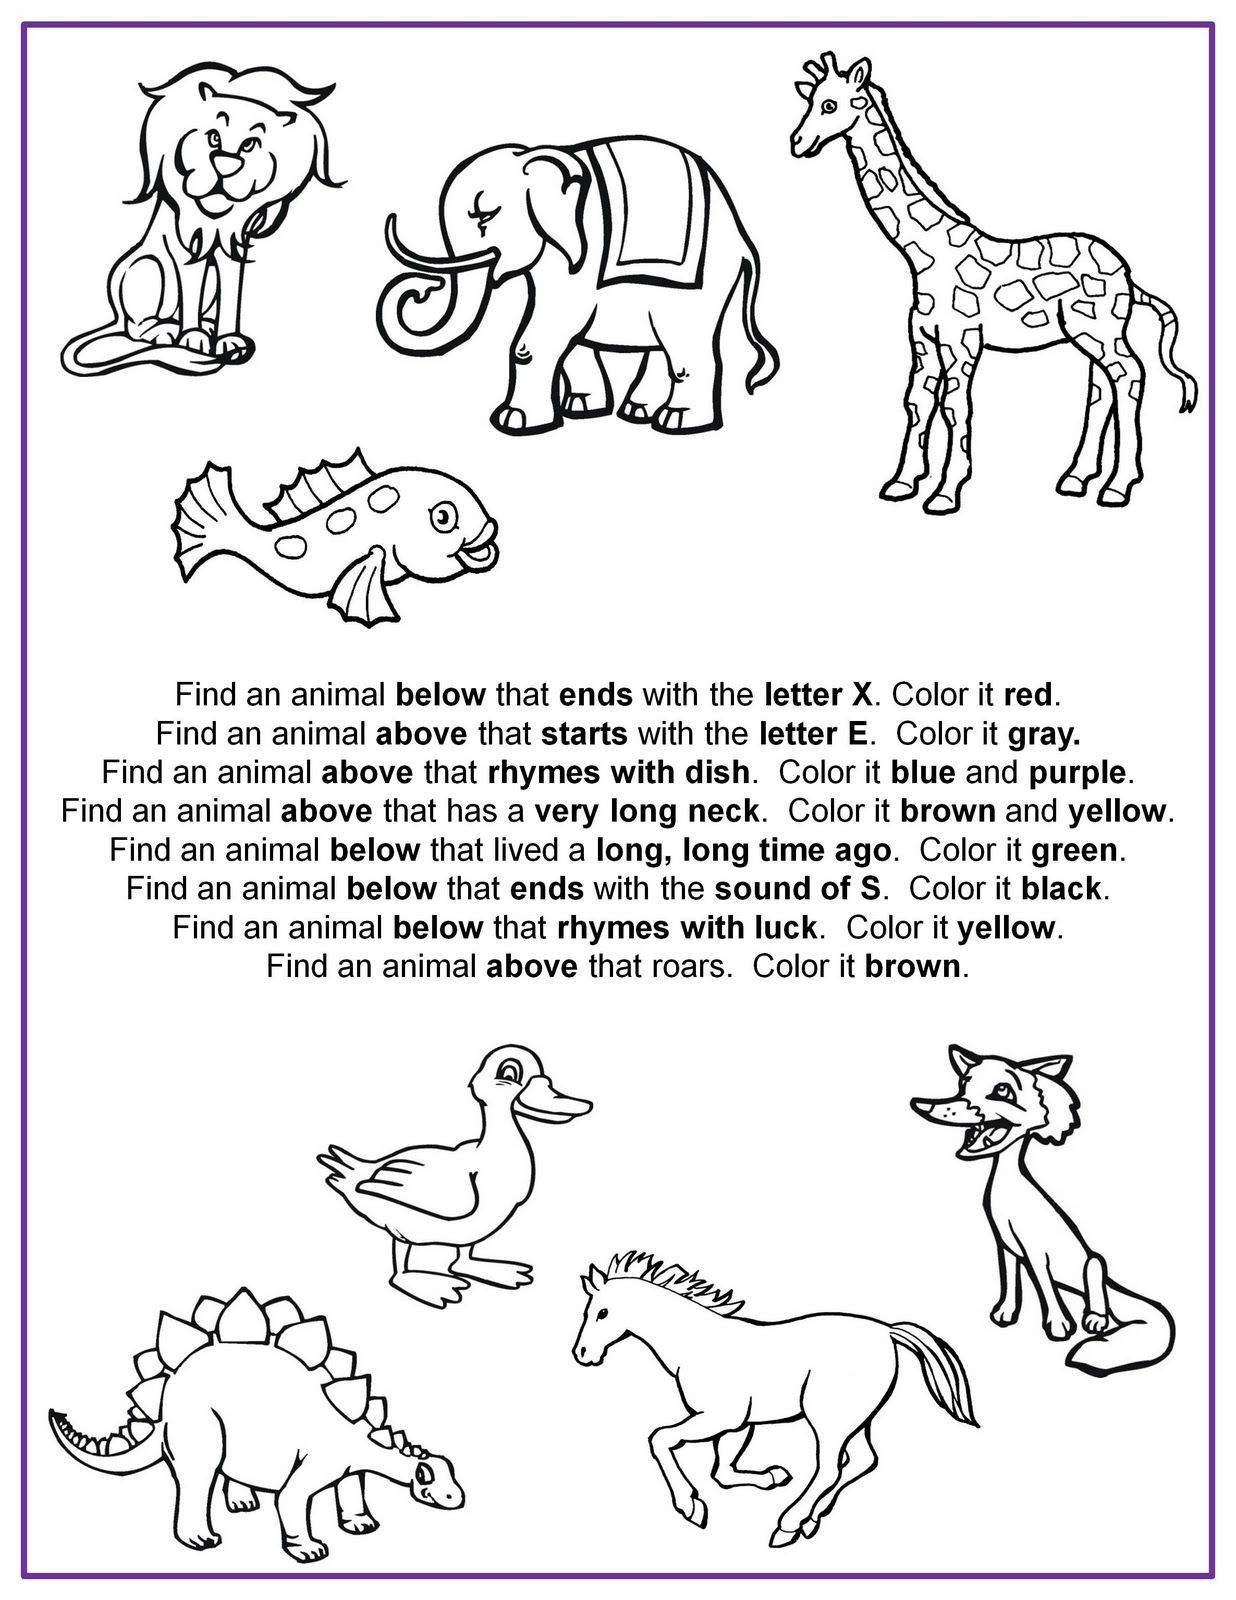 Find It Color It Following Directions